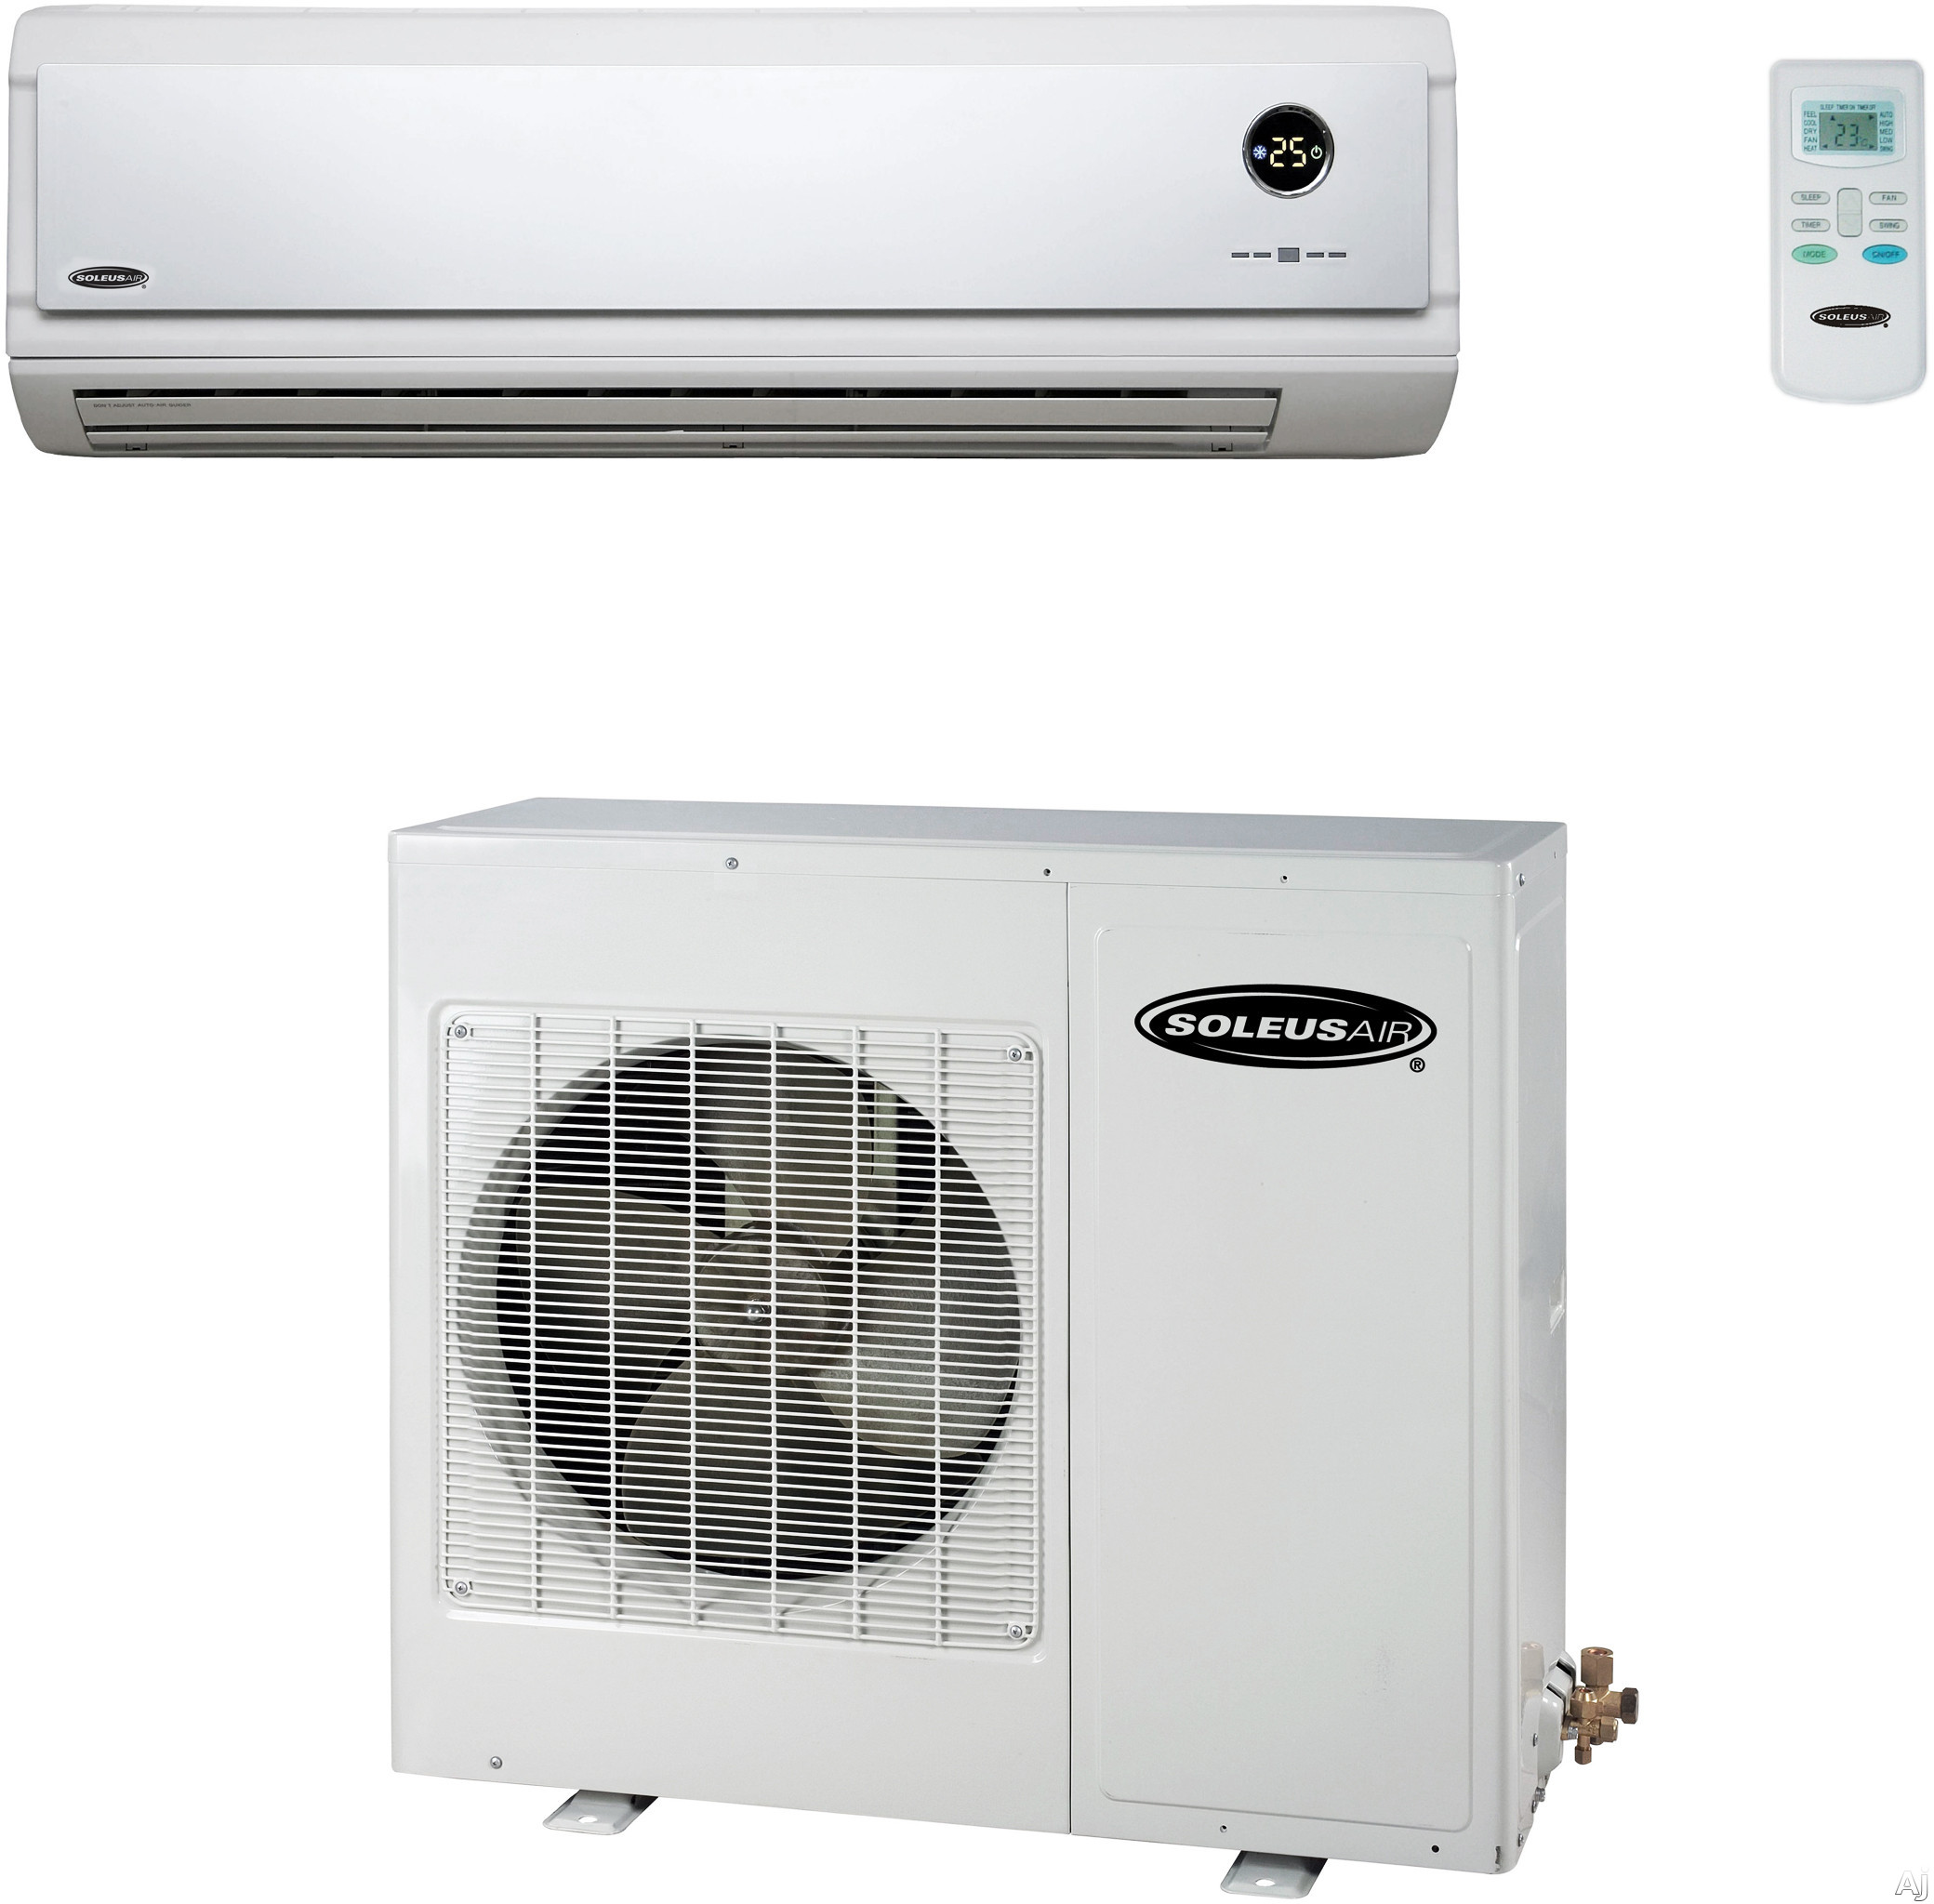 Soleus KFHHP18 18,000 BTU Single Zone Wall-Mounted Cool/Heat Pump Mini Split Air Conditioning System with Inverter Technology, 4 Fan Settings and Wireless Remote Control (KFHHP18ID Indoor / KFHHP18OD Outdoor) KFHHP18